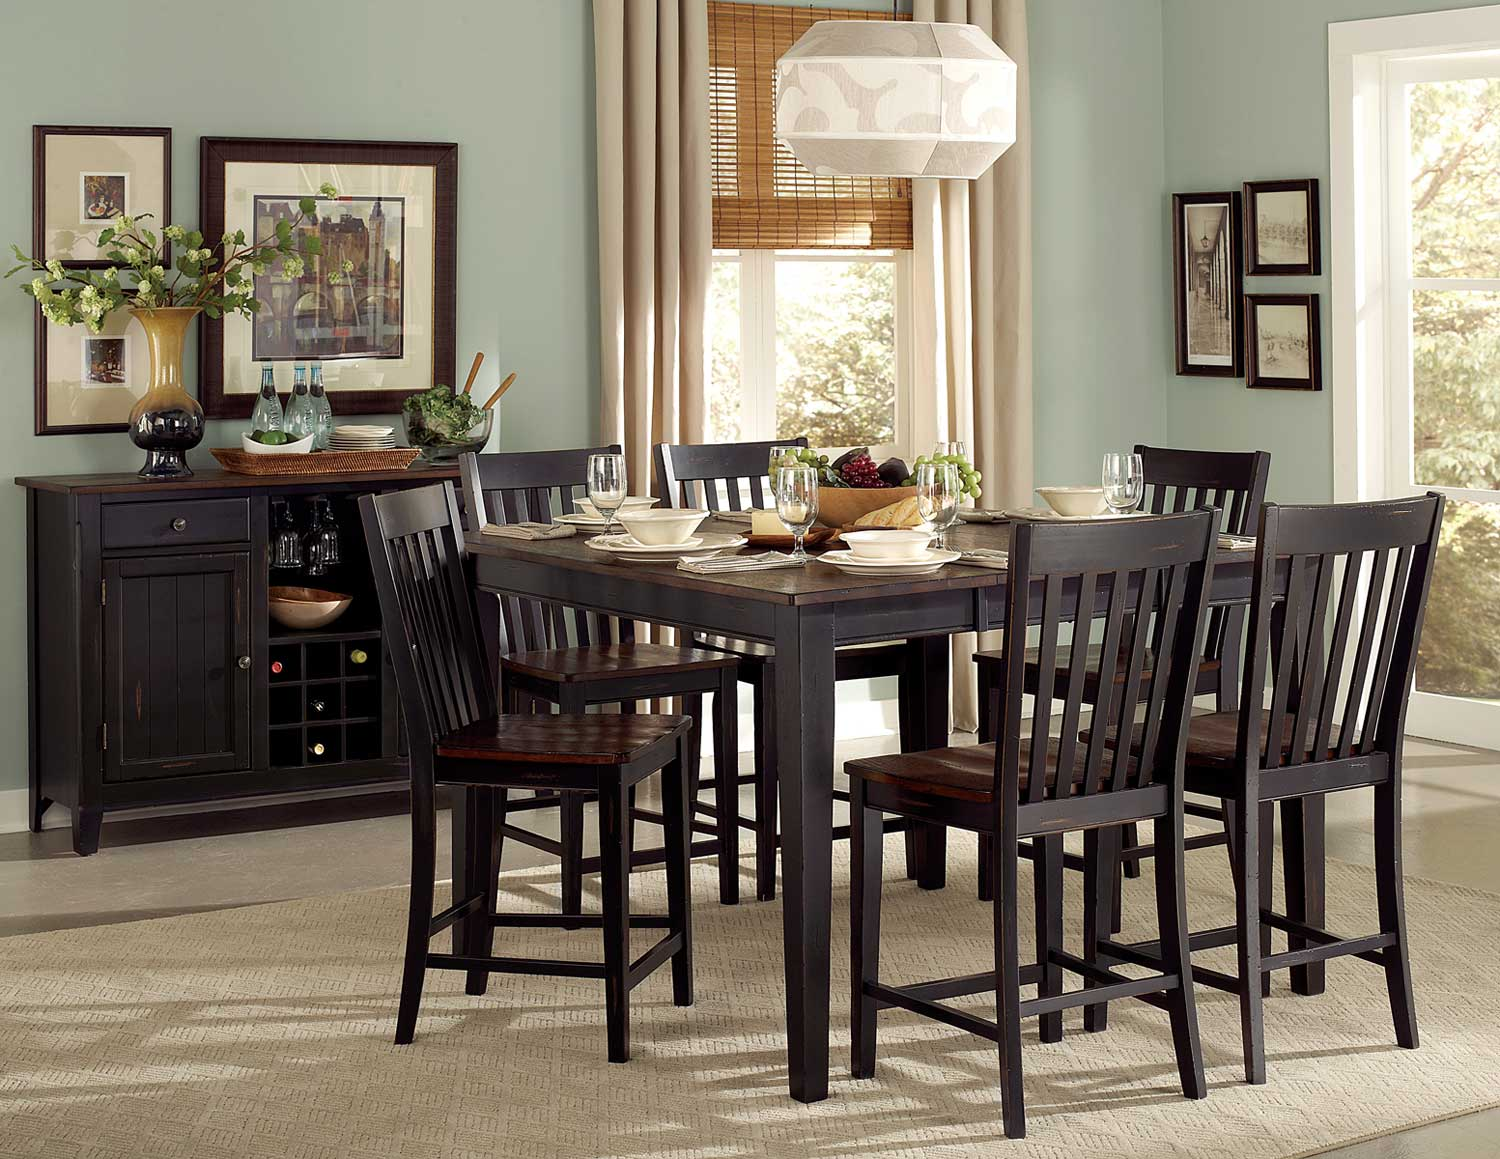 Homelegance Three Falls Counter Height Dining Set - Two Tone Dark Brown/Black Sand